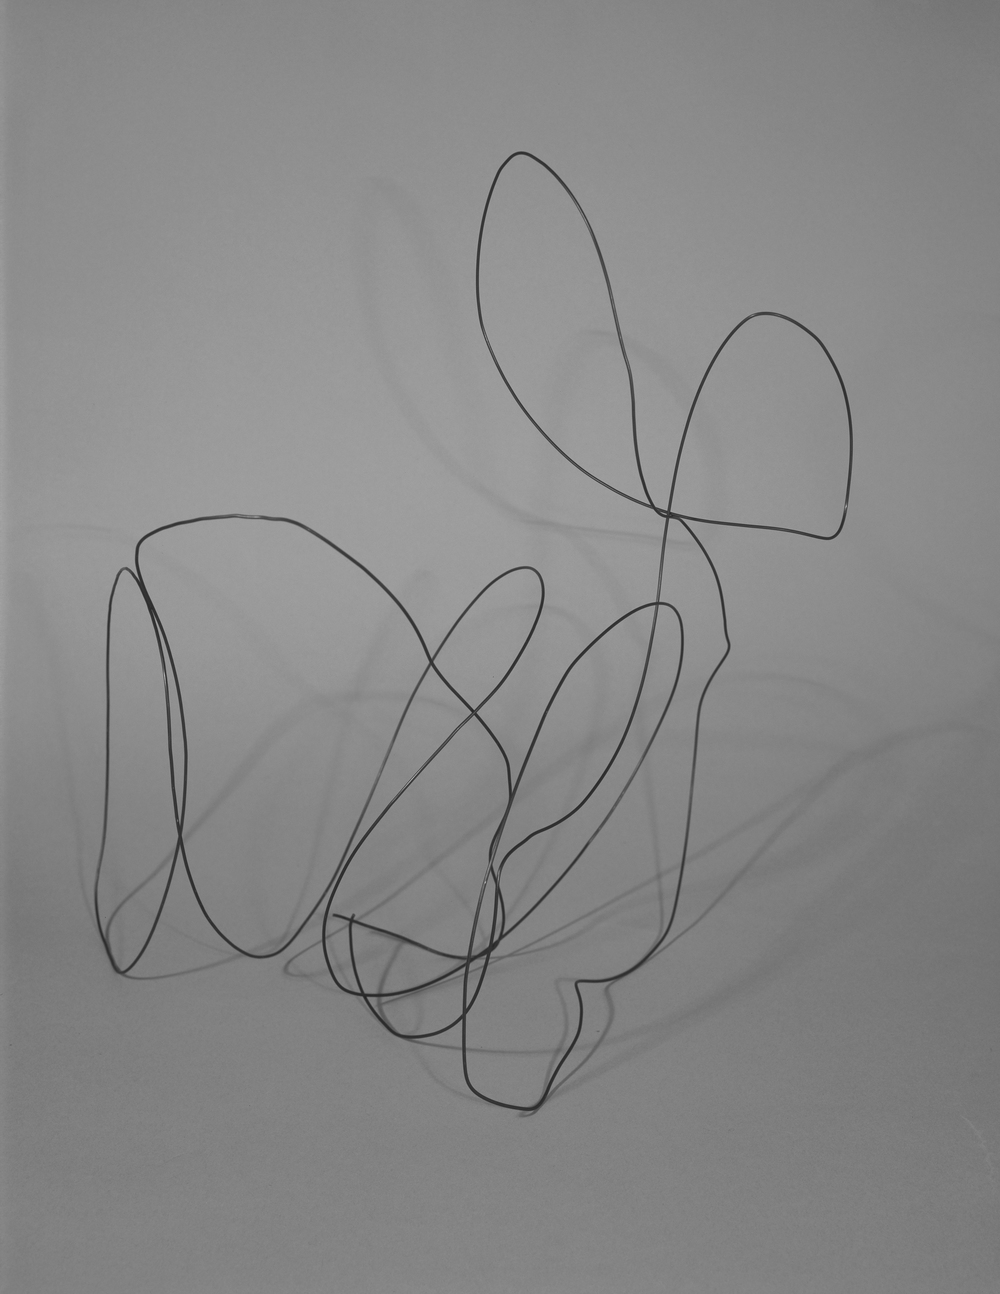 IV (Wire Shape), C-Print, 17 x 22 inches, 2011